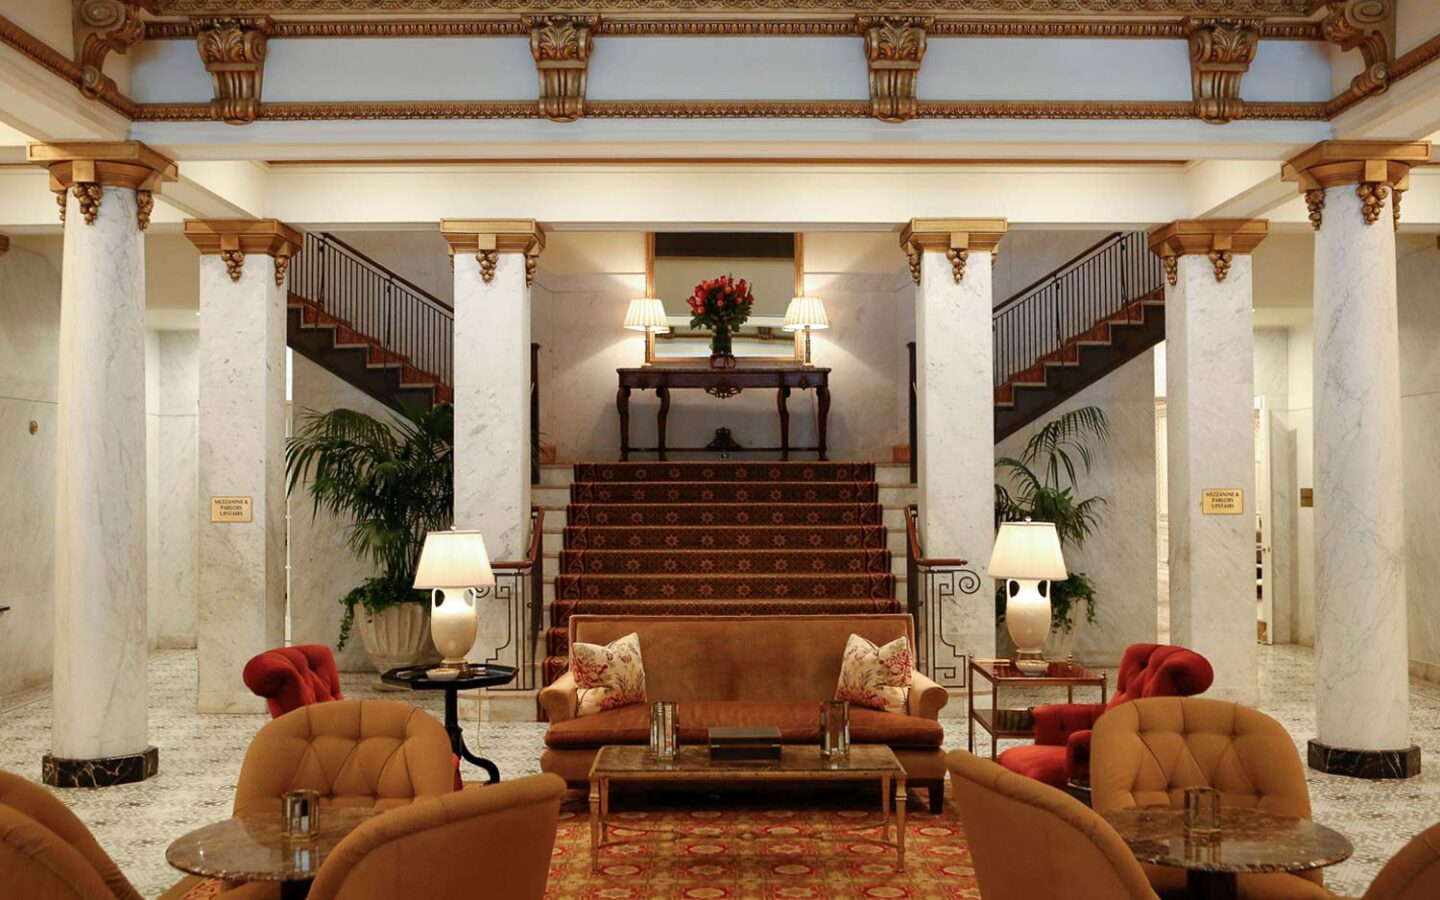 hotel lounge with a grand staircase, large columns, and comfy couches